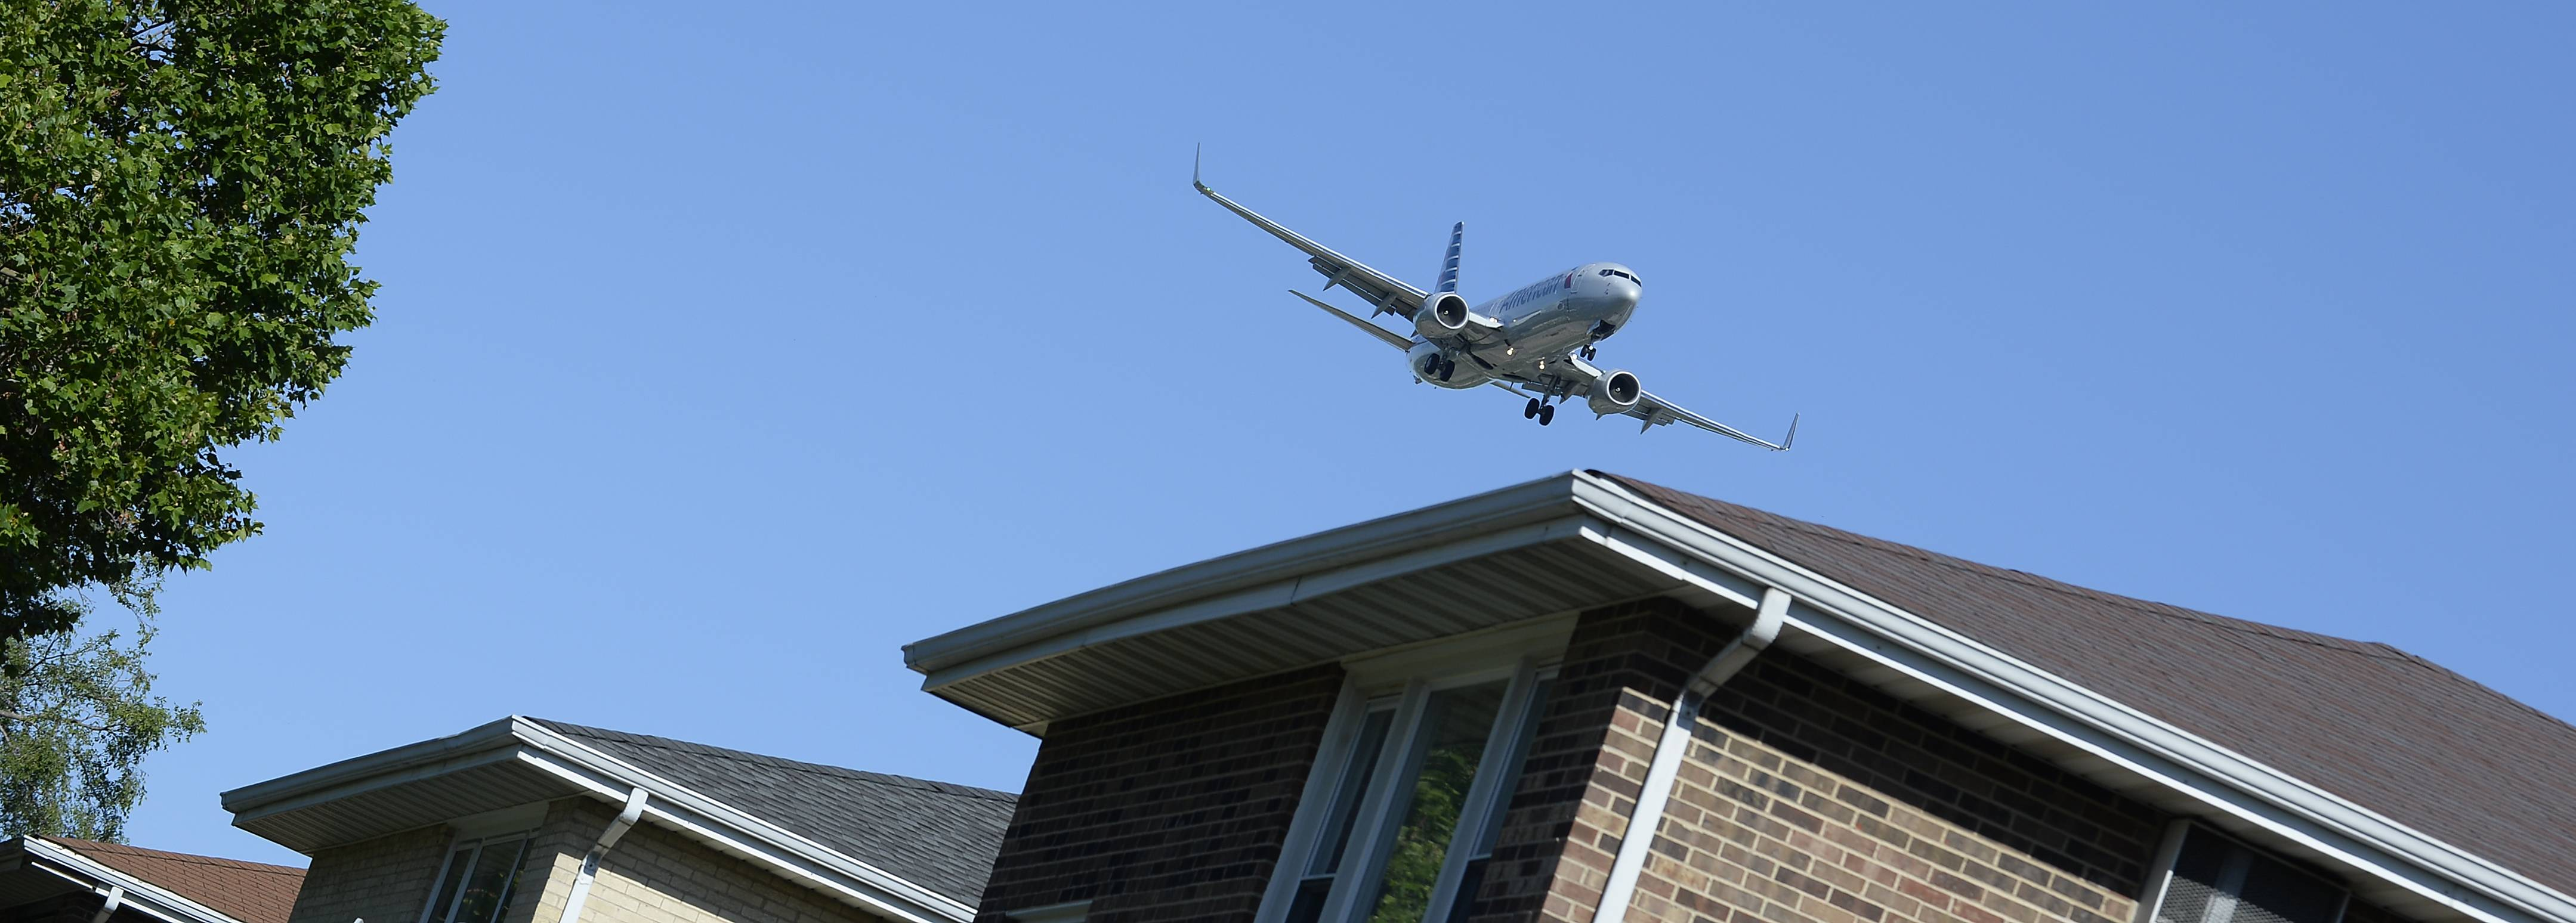 Low-flying jets preparing to land at O'Hare International Airport are causing consternation as a noise mitigation group works on solutions for overnight flights.